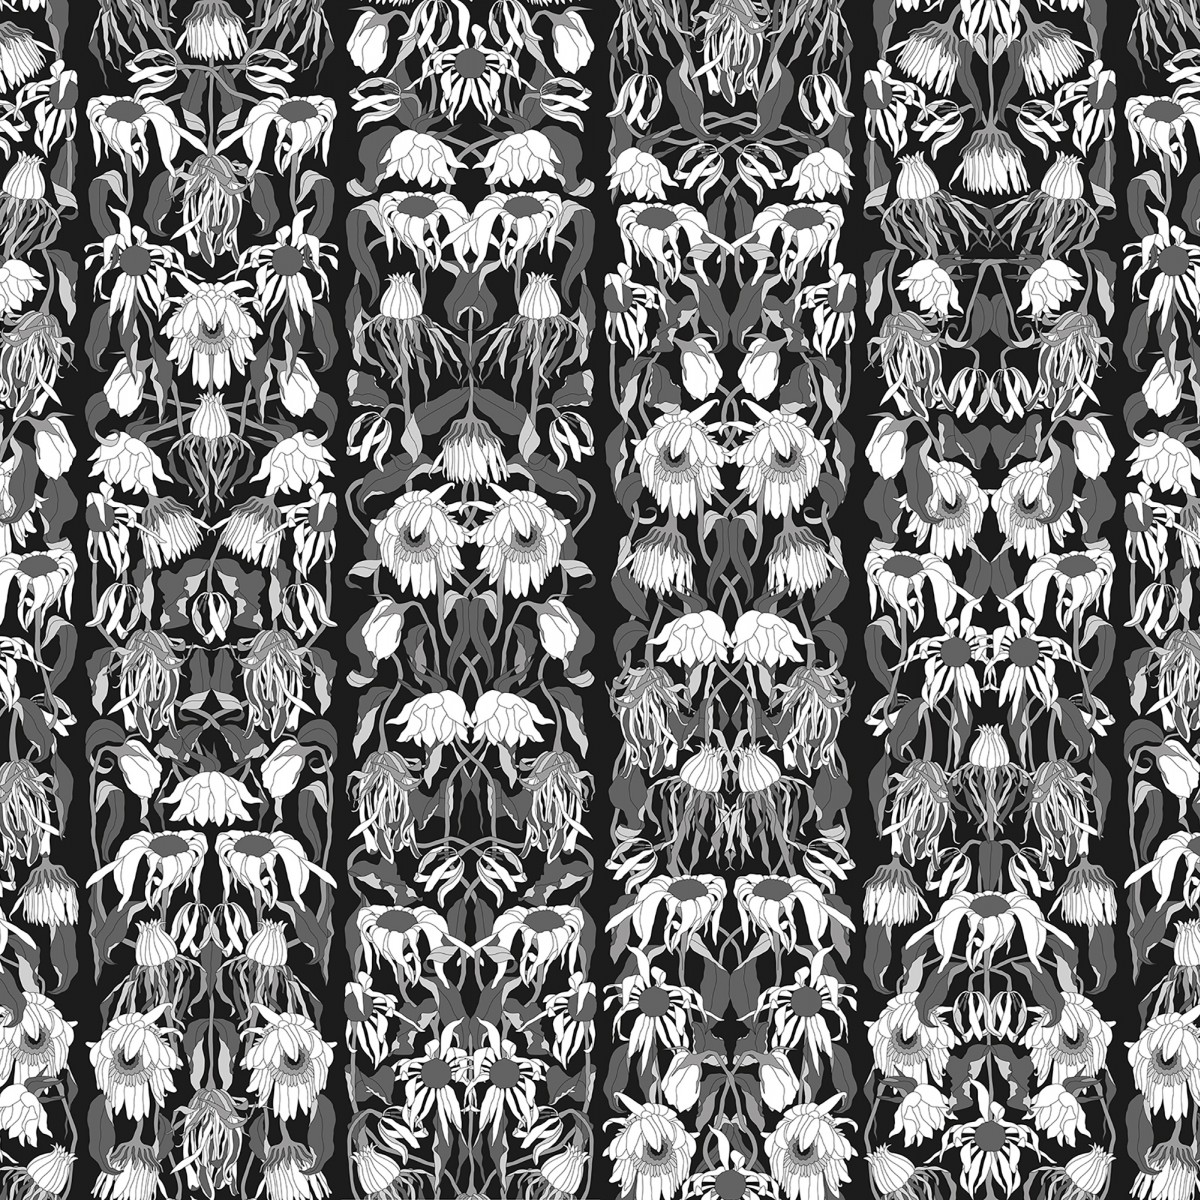 Tapet designer Withered Flowers Black Archives by Studio Job, JOB-06, NLXL, 4.4mp / rola